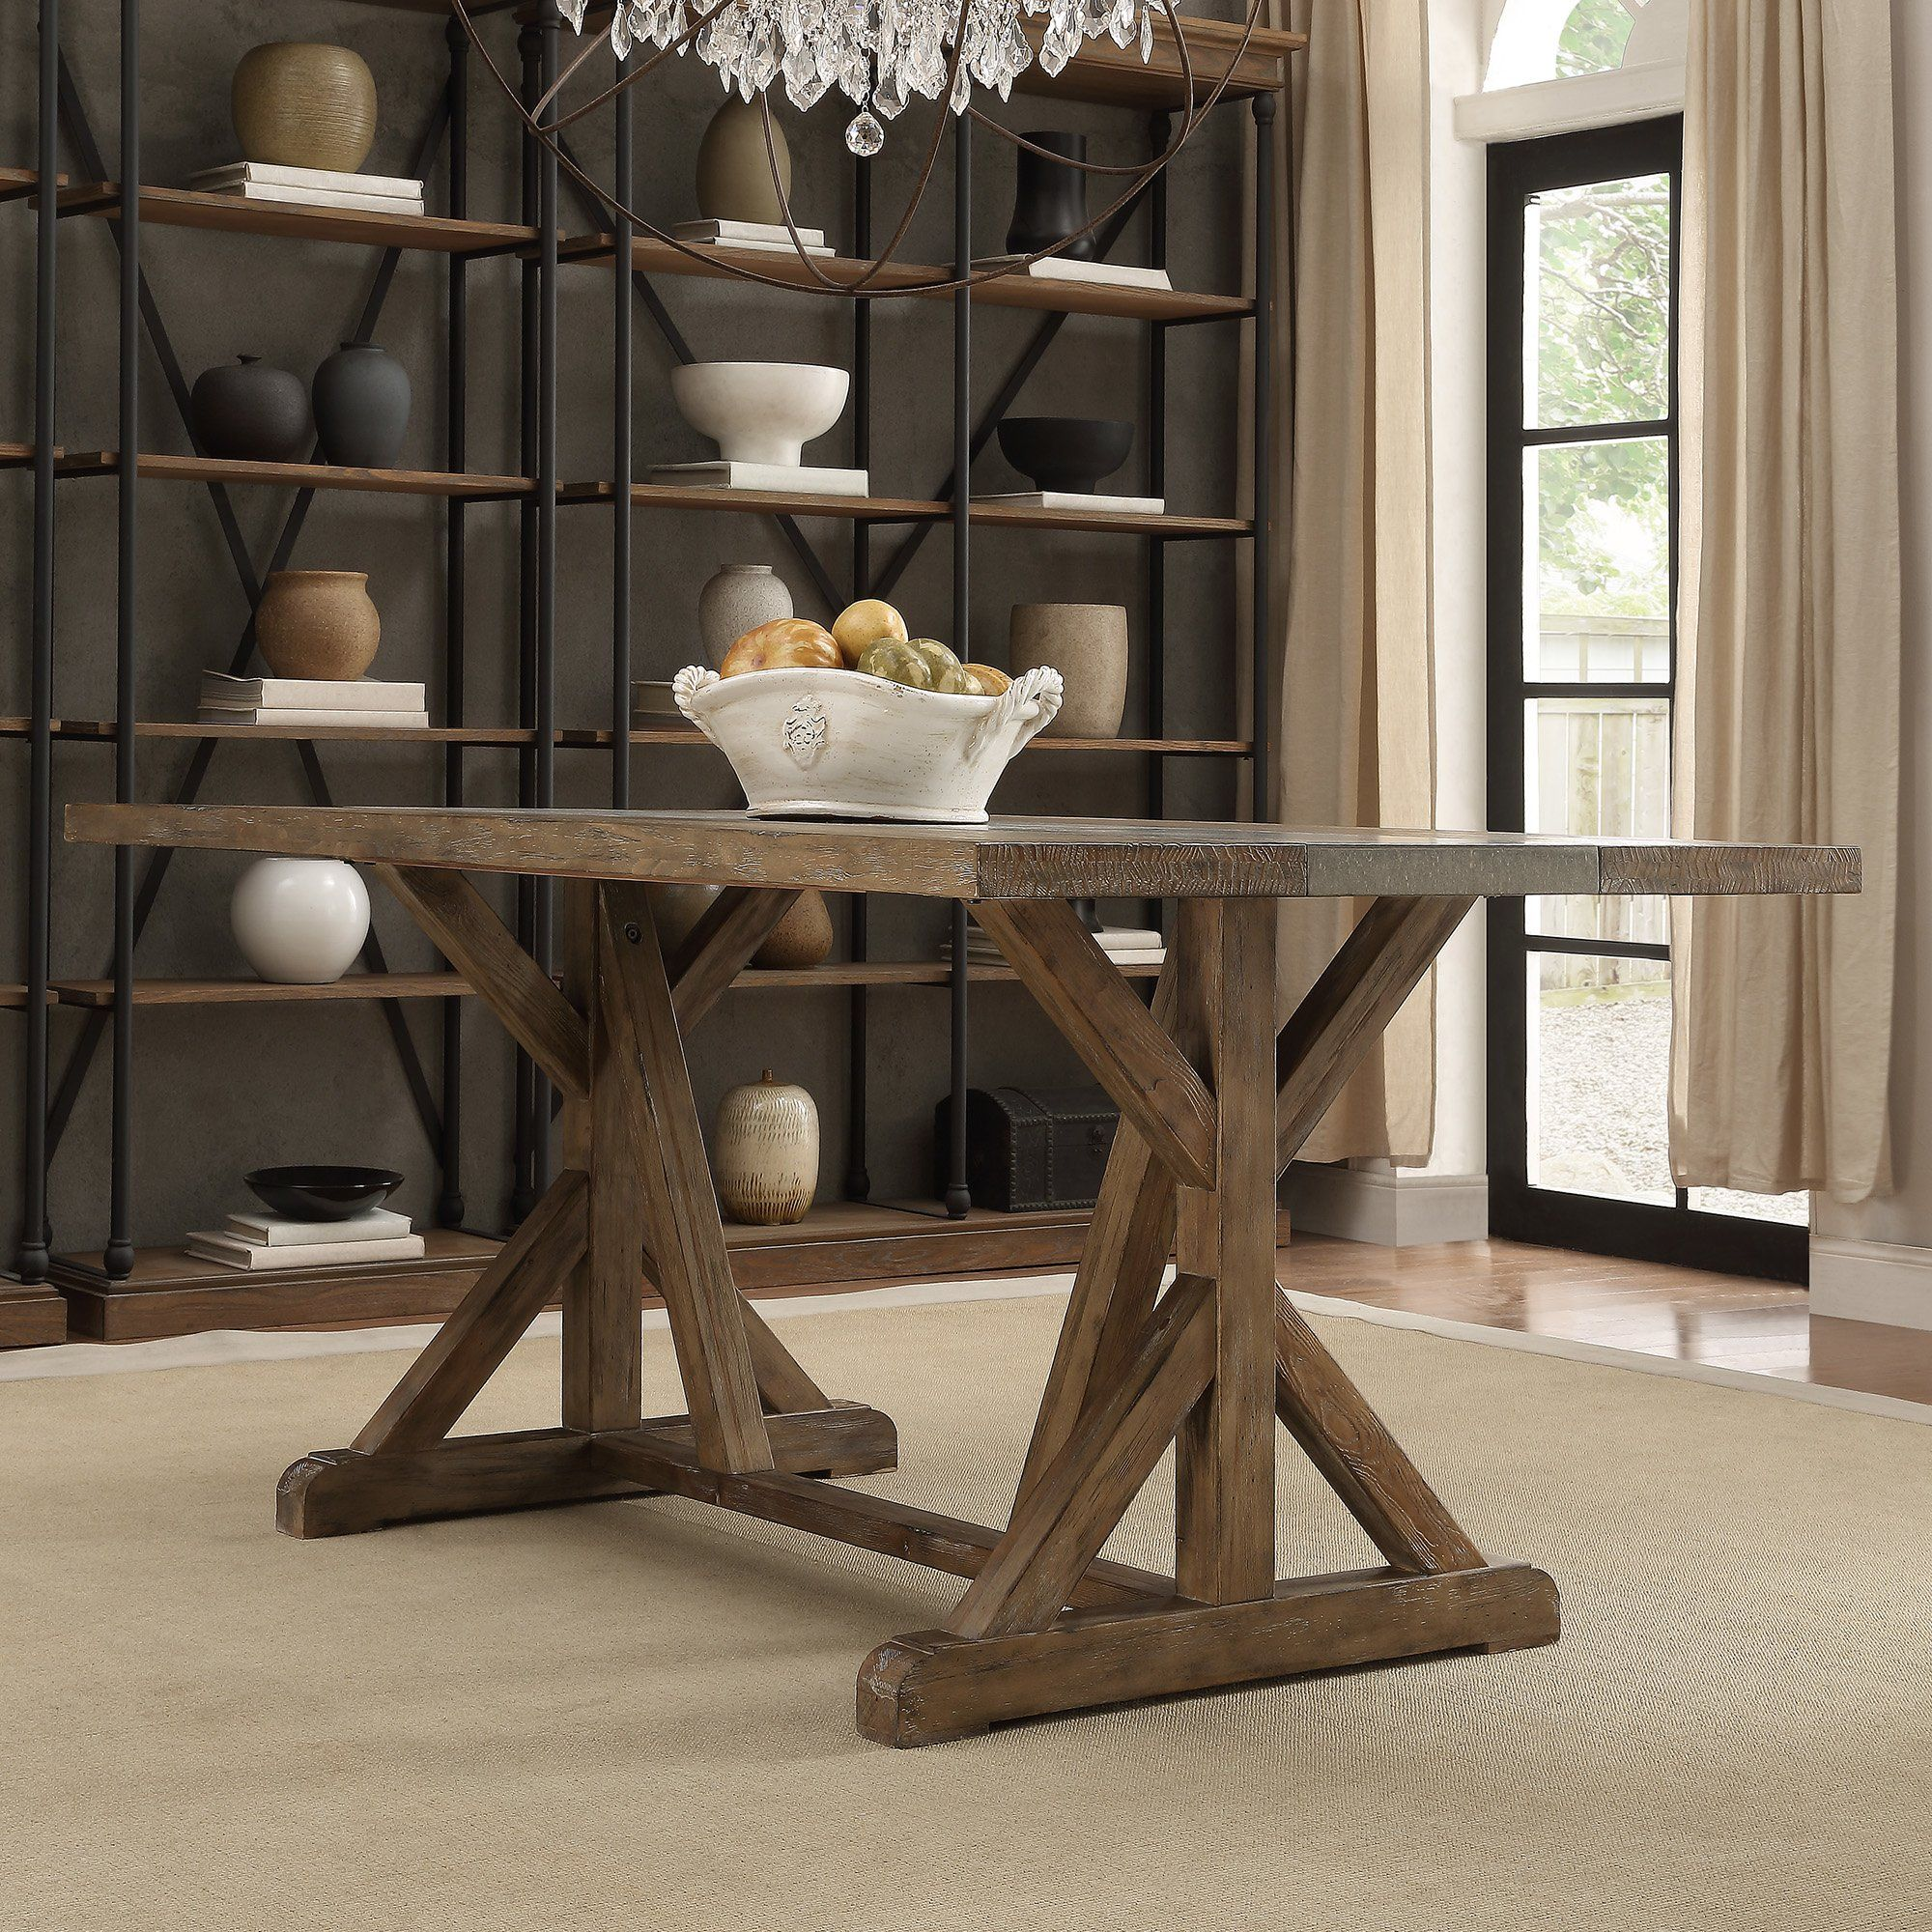 Room One Allium WayR Exeter Dining Table